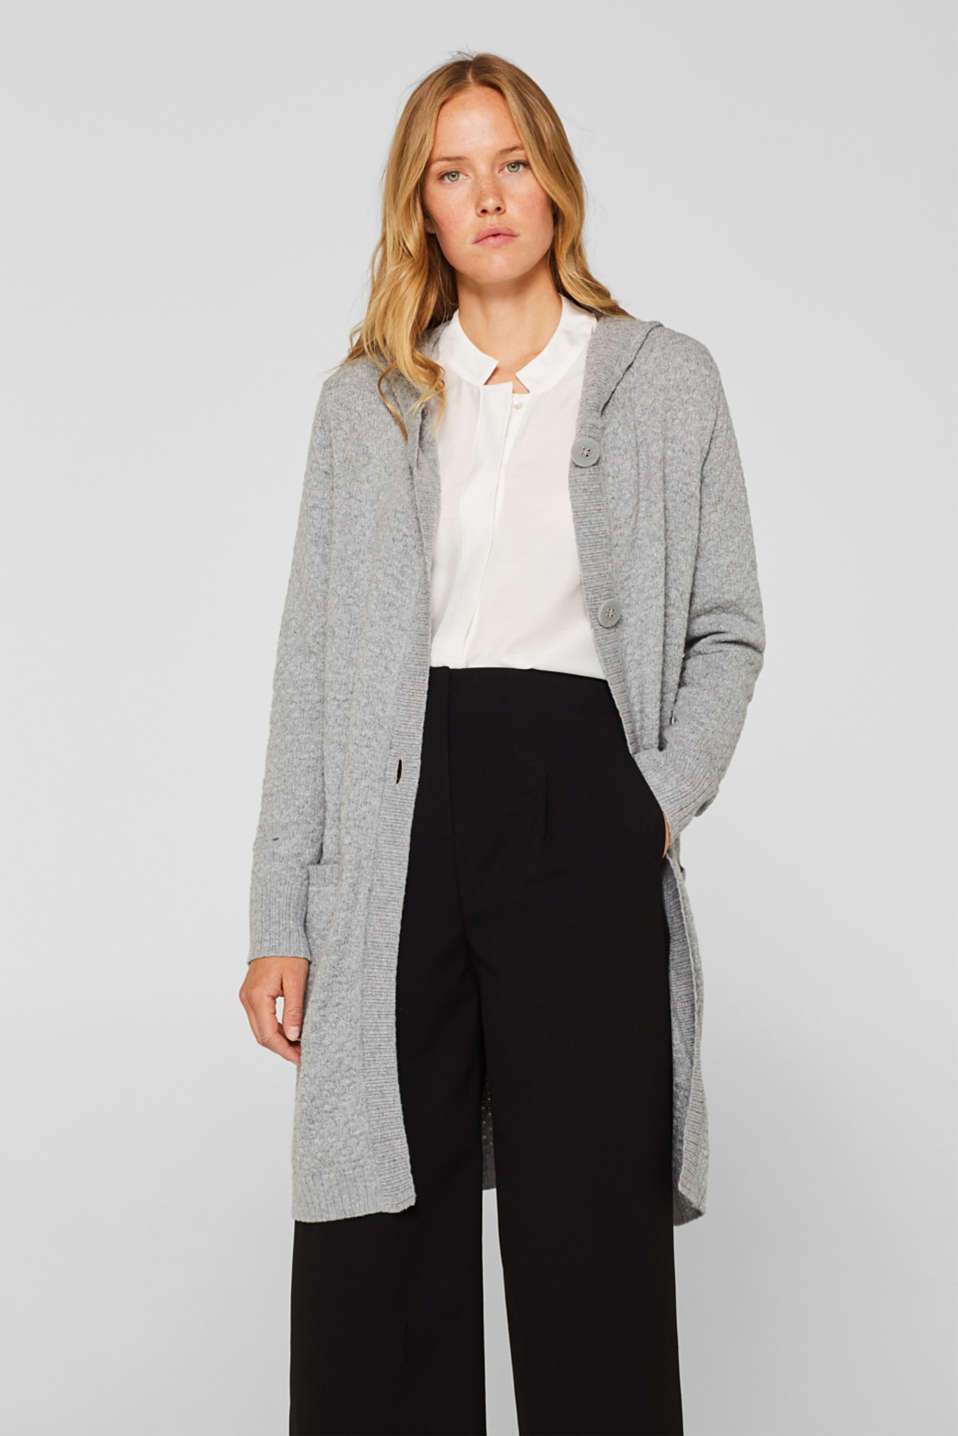 Esprit - Hooded coat in a textured knit, made with wool